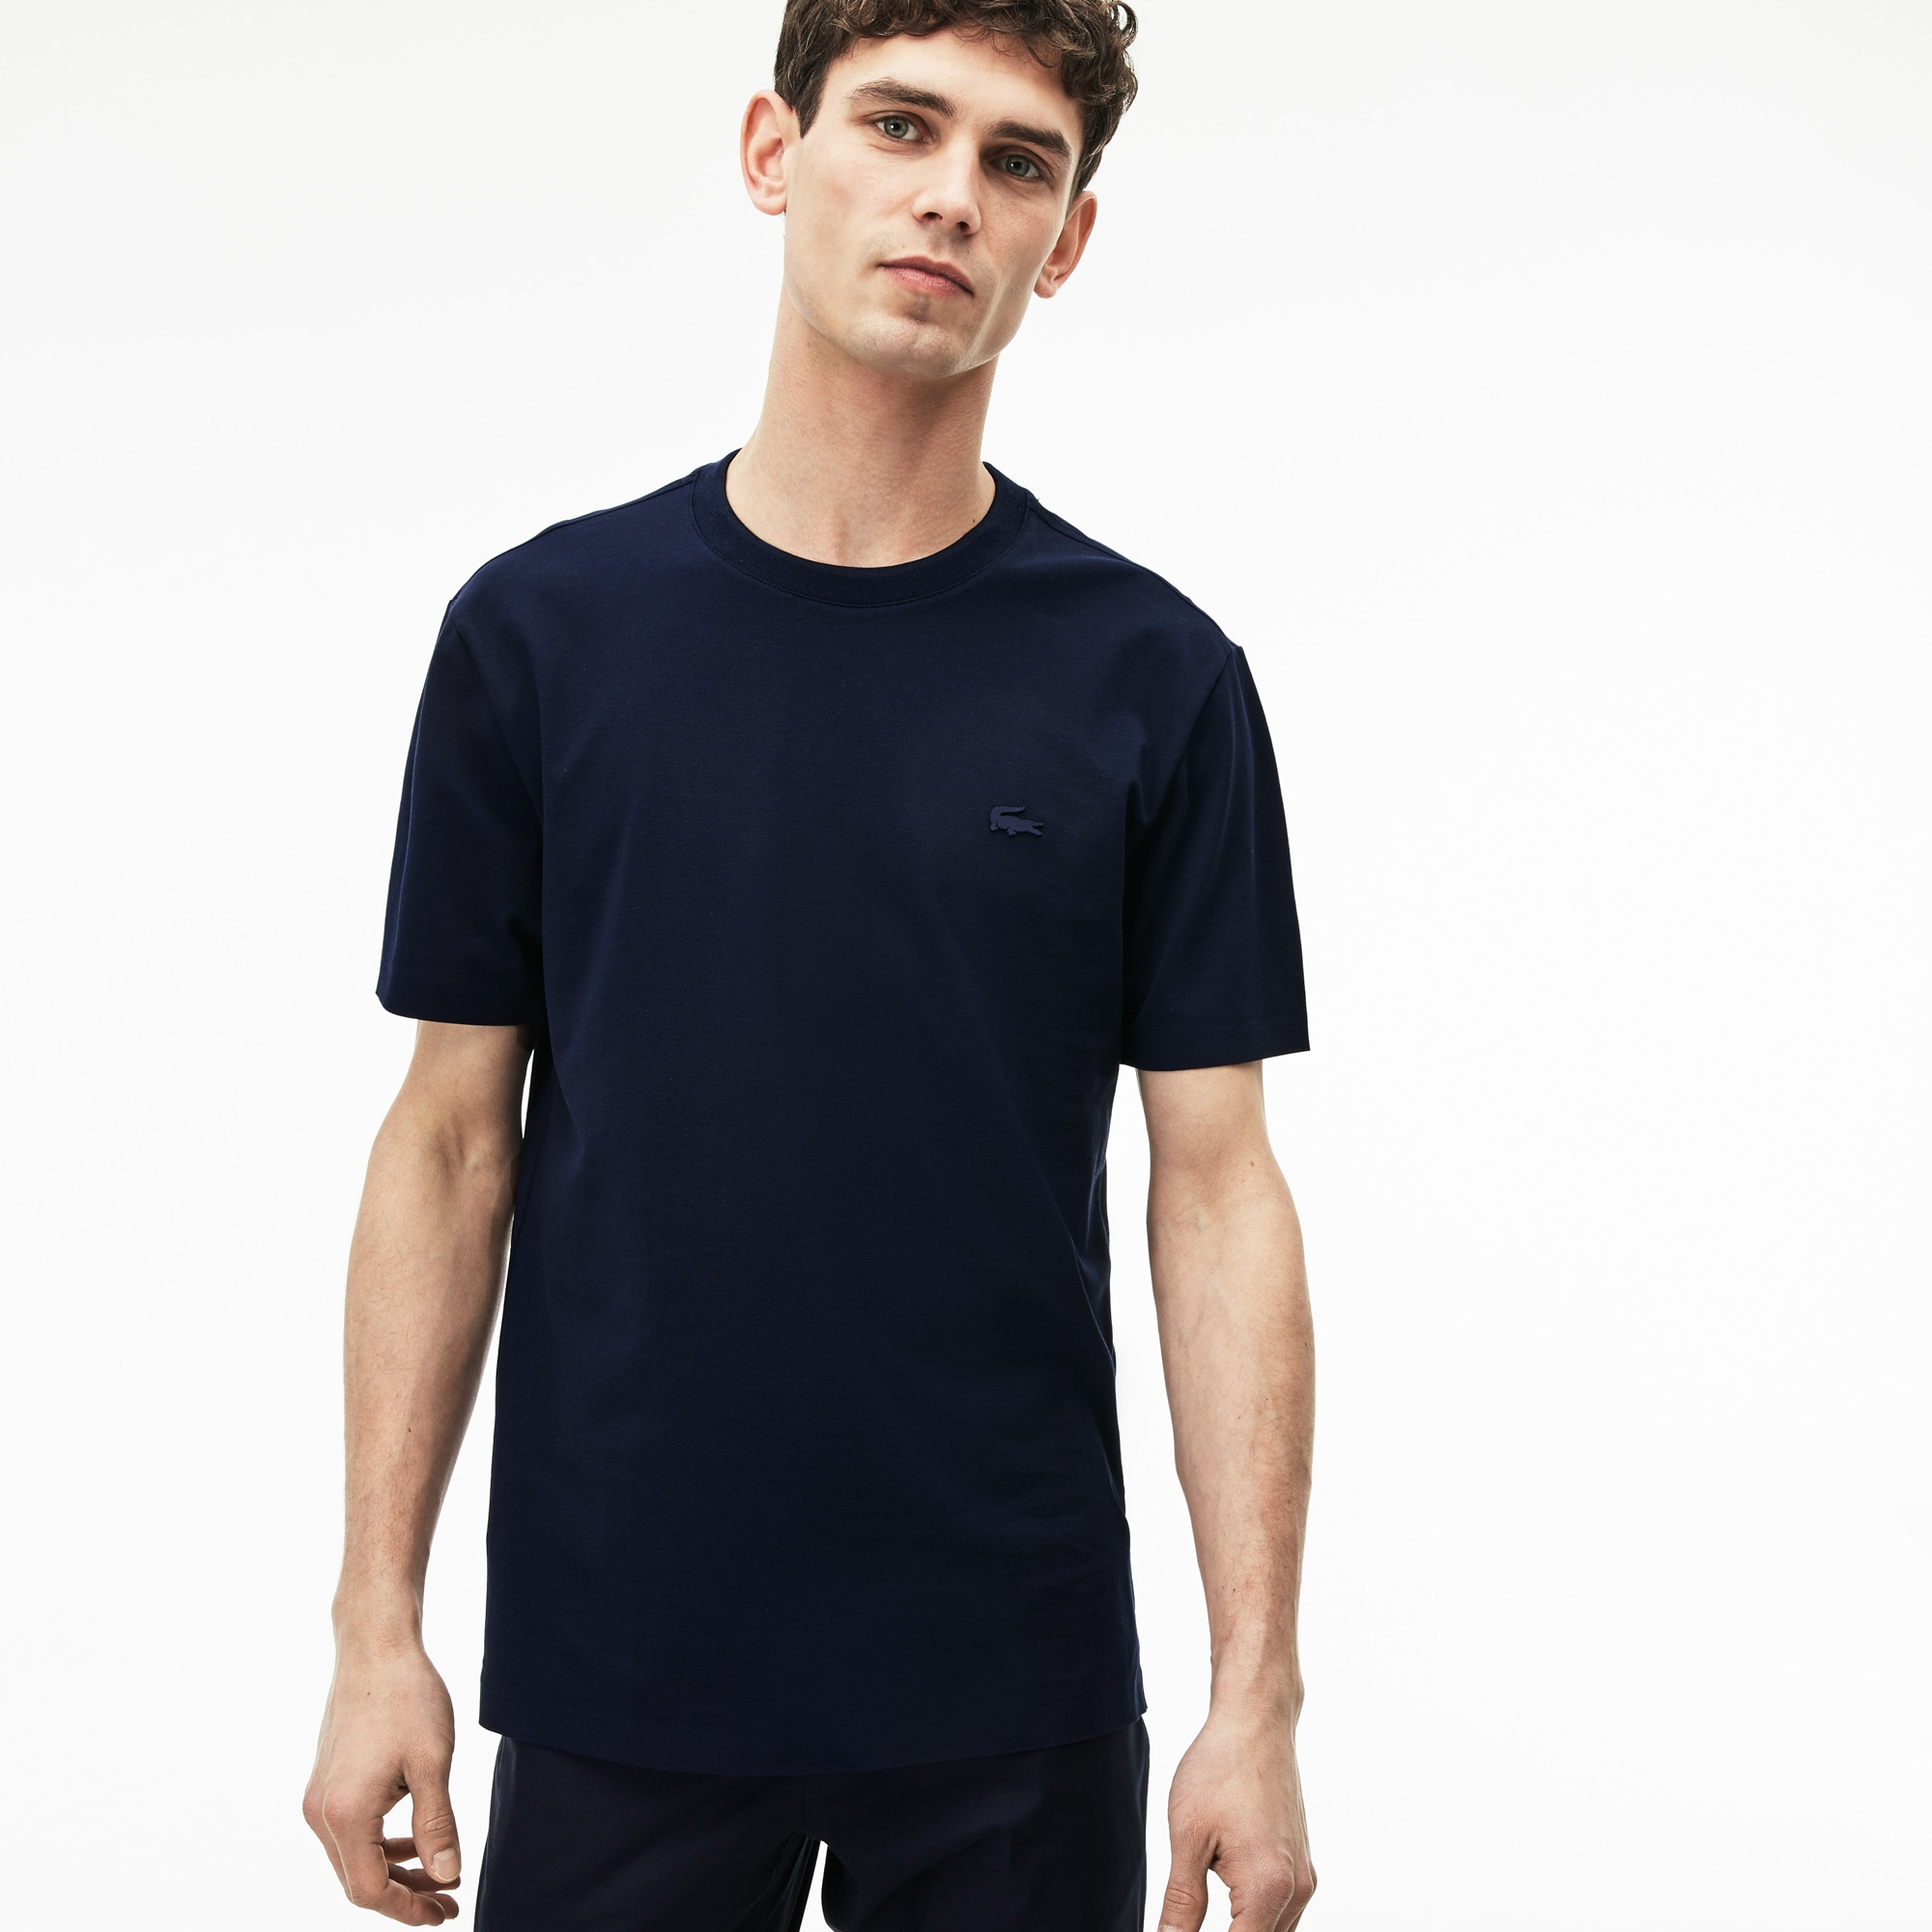 Men's Crew Neck Lacoste MOTION Pima Cotton Piqué T-shirt